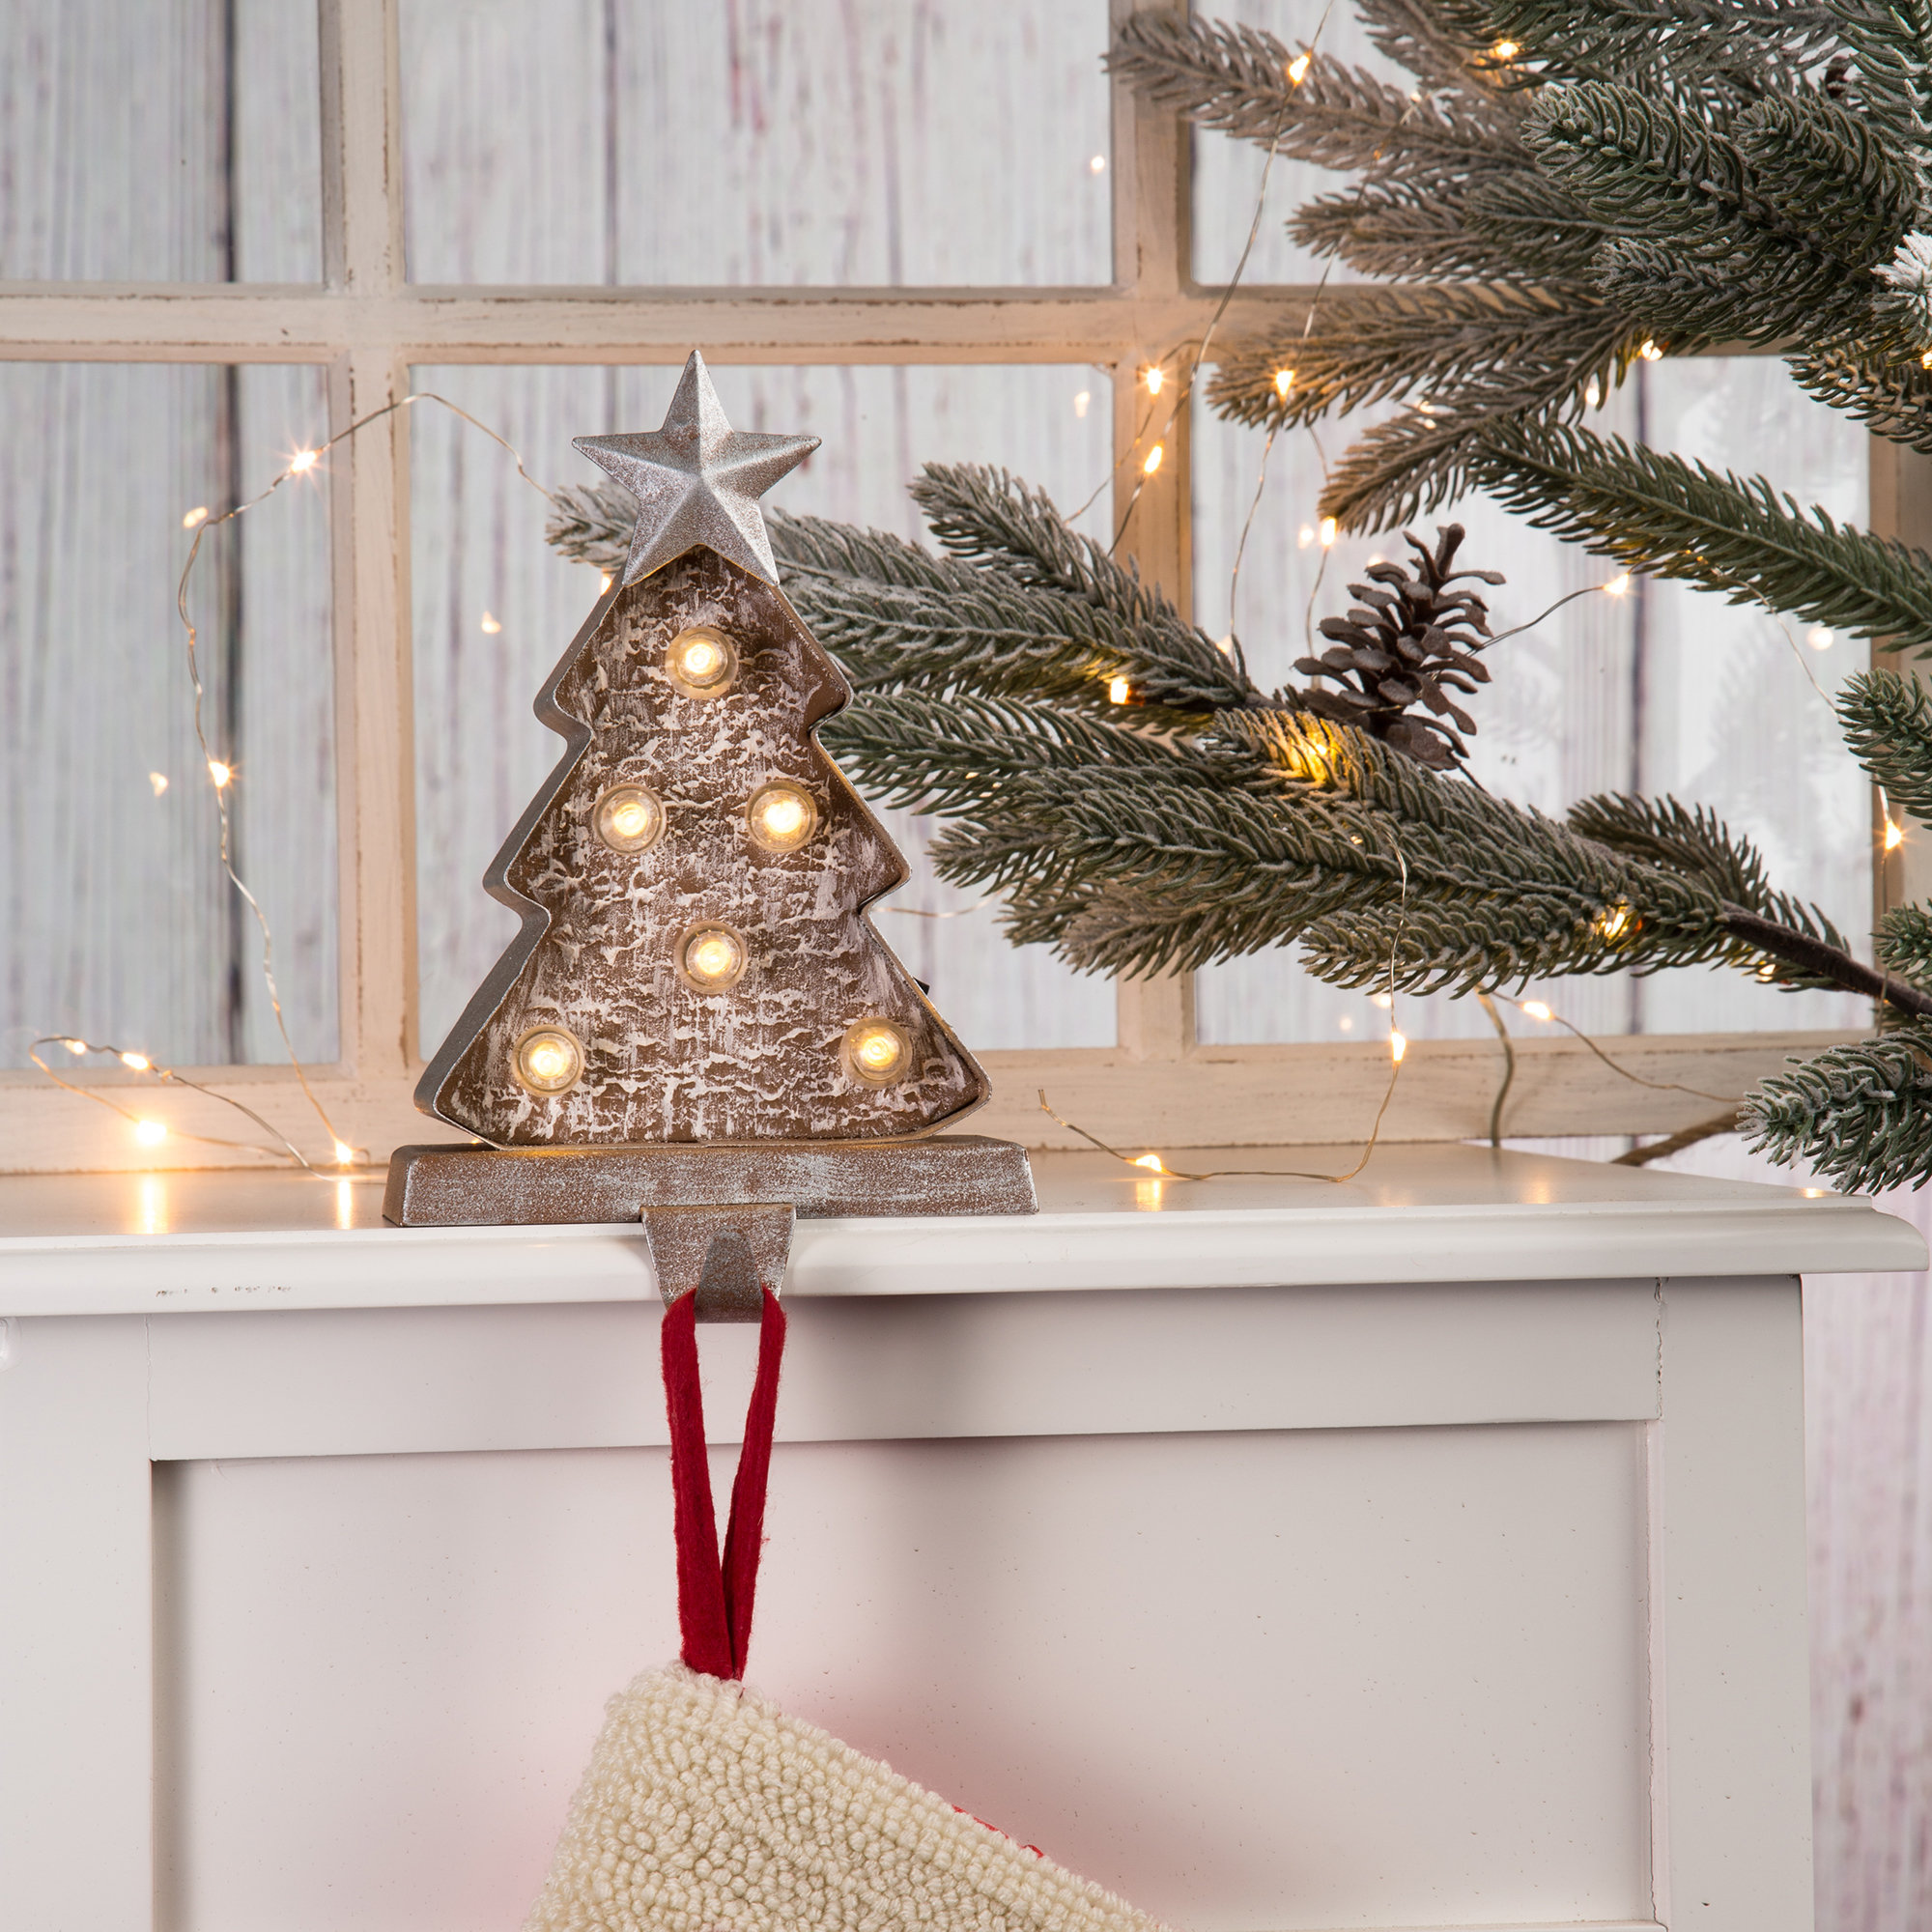 Weiy Knitted Christmas Stockings Classic Xmas Knit Ornaments Solid Color Tree Decor Accessory for Home Decorations,Linen